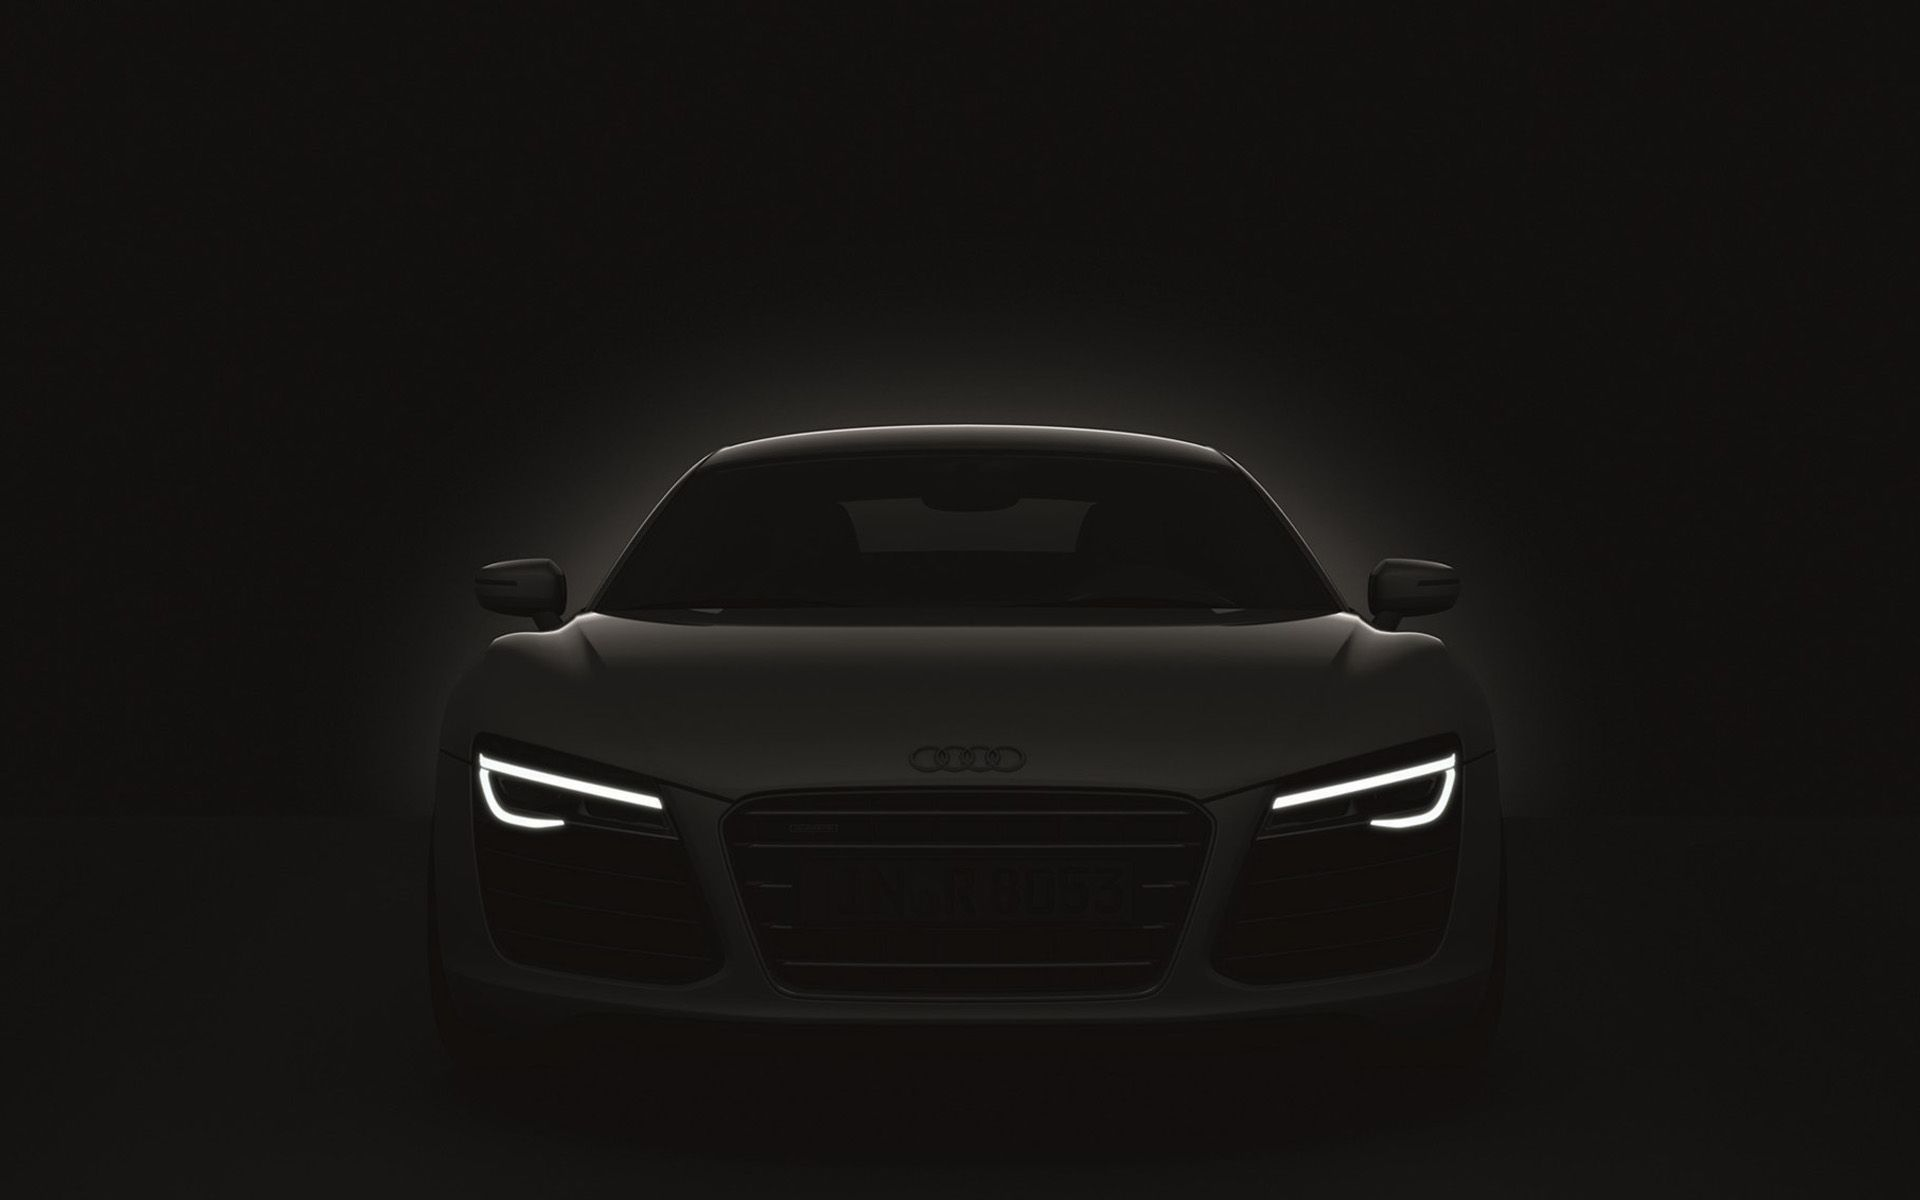 Samsung Galaxy A Hd Wallpaper Audi R8 Desktop Wallpaper 34 1920x1200